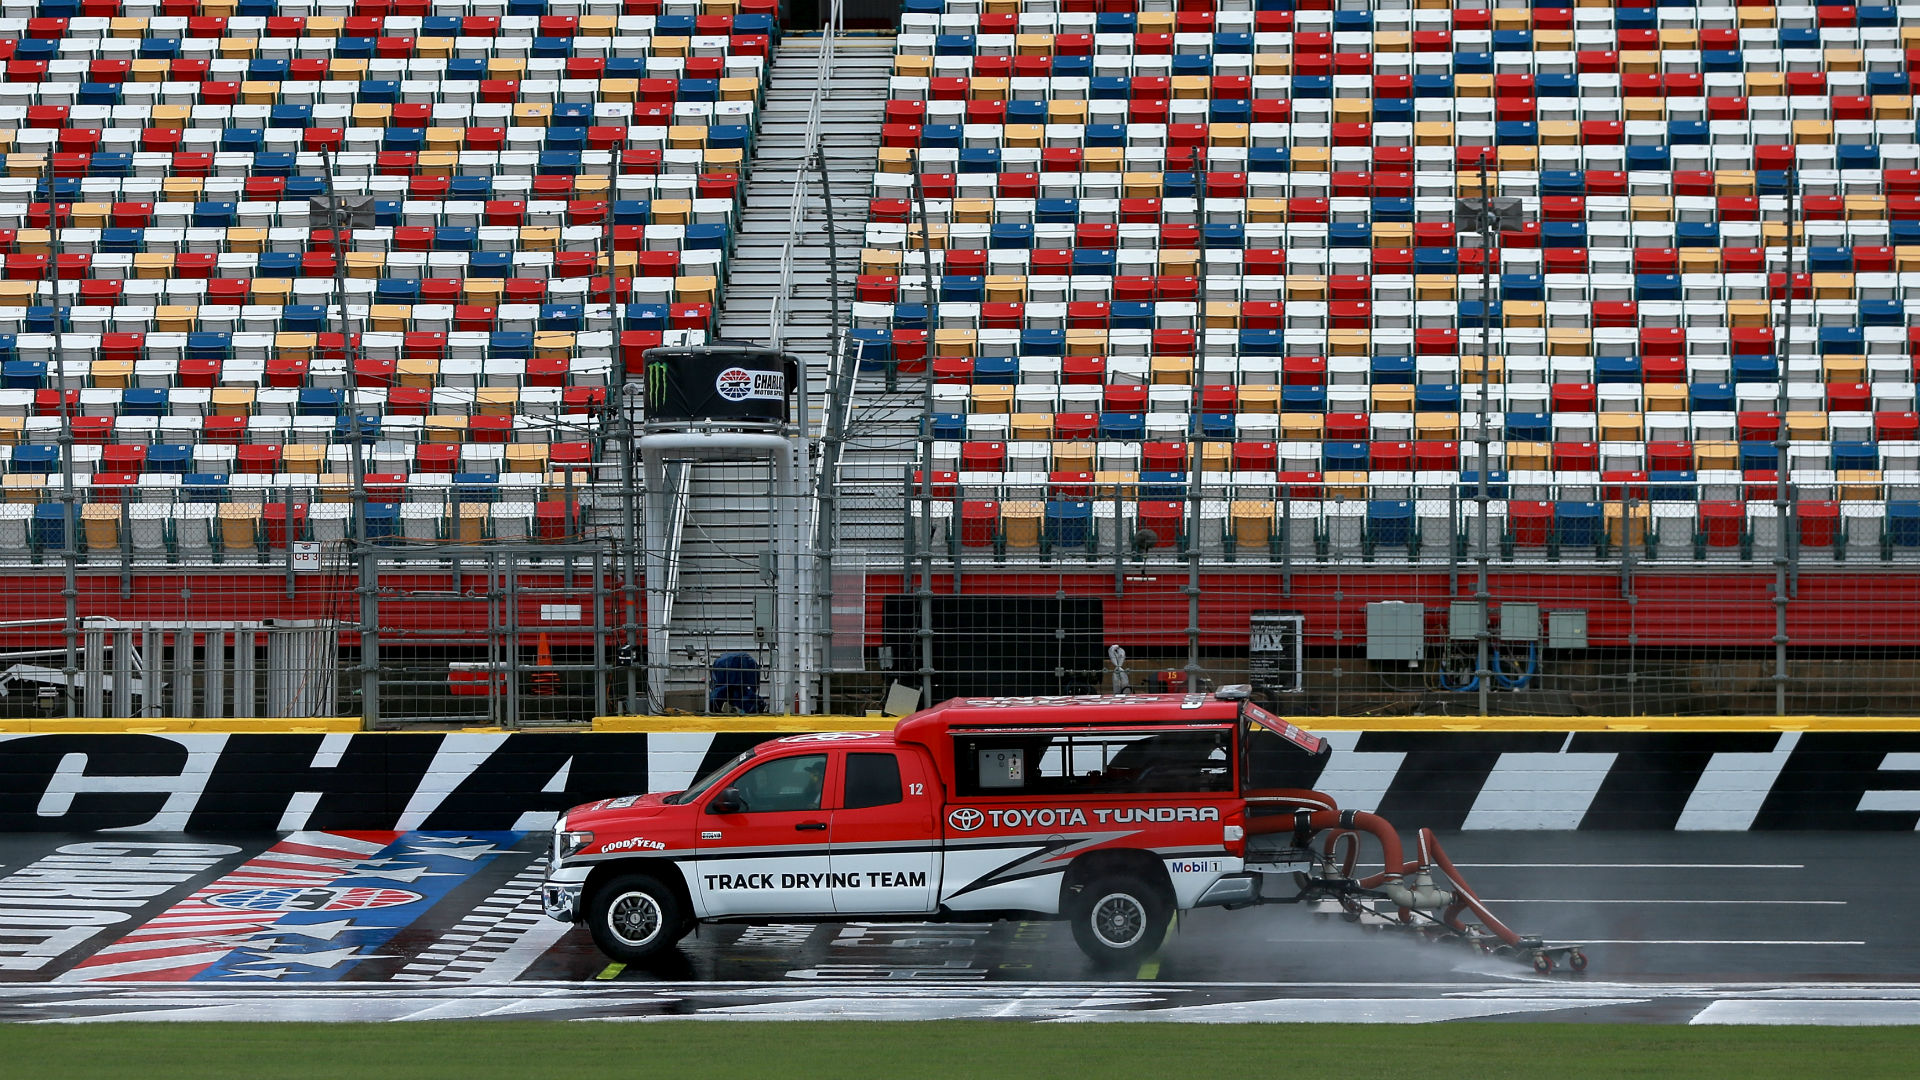 NASCAR race weather: How long will rain in Charlotte forecast delay Wednesday's Cup race?